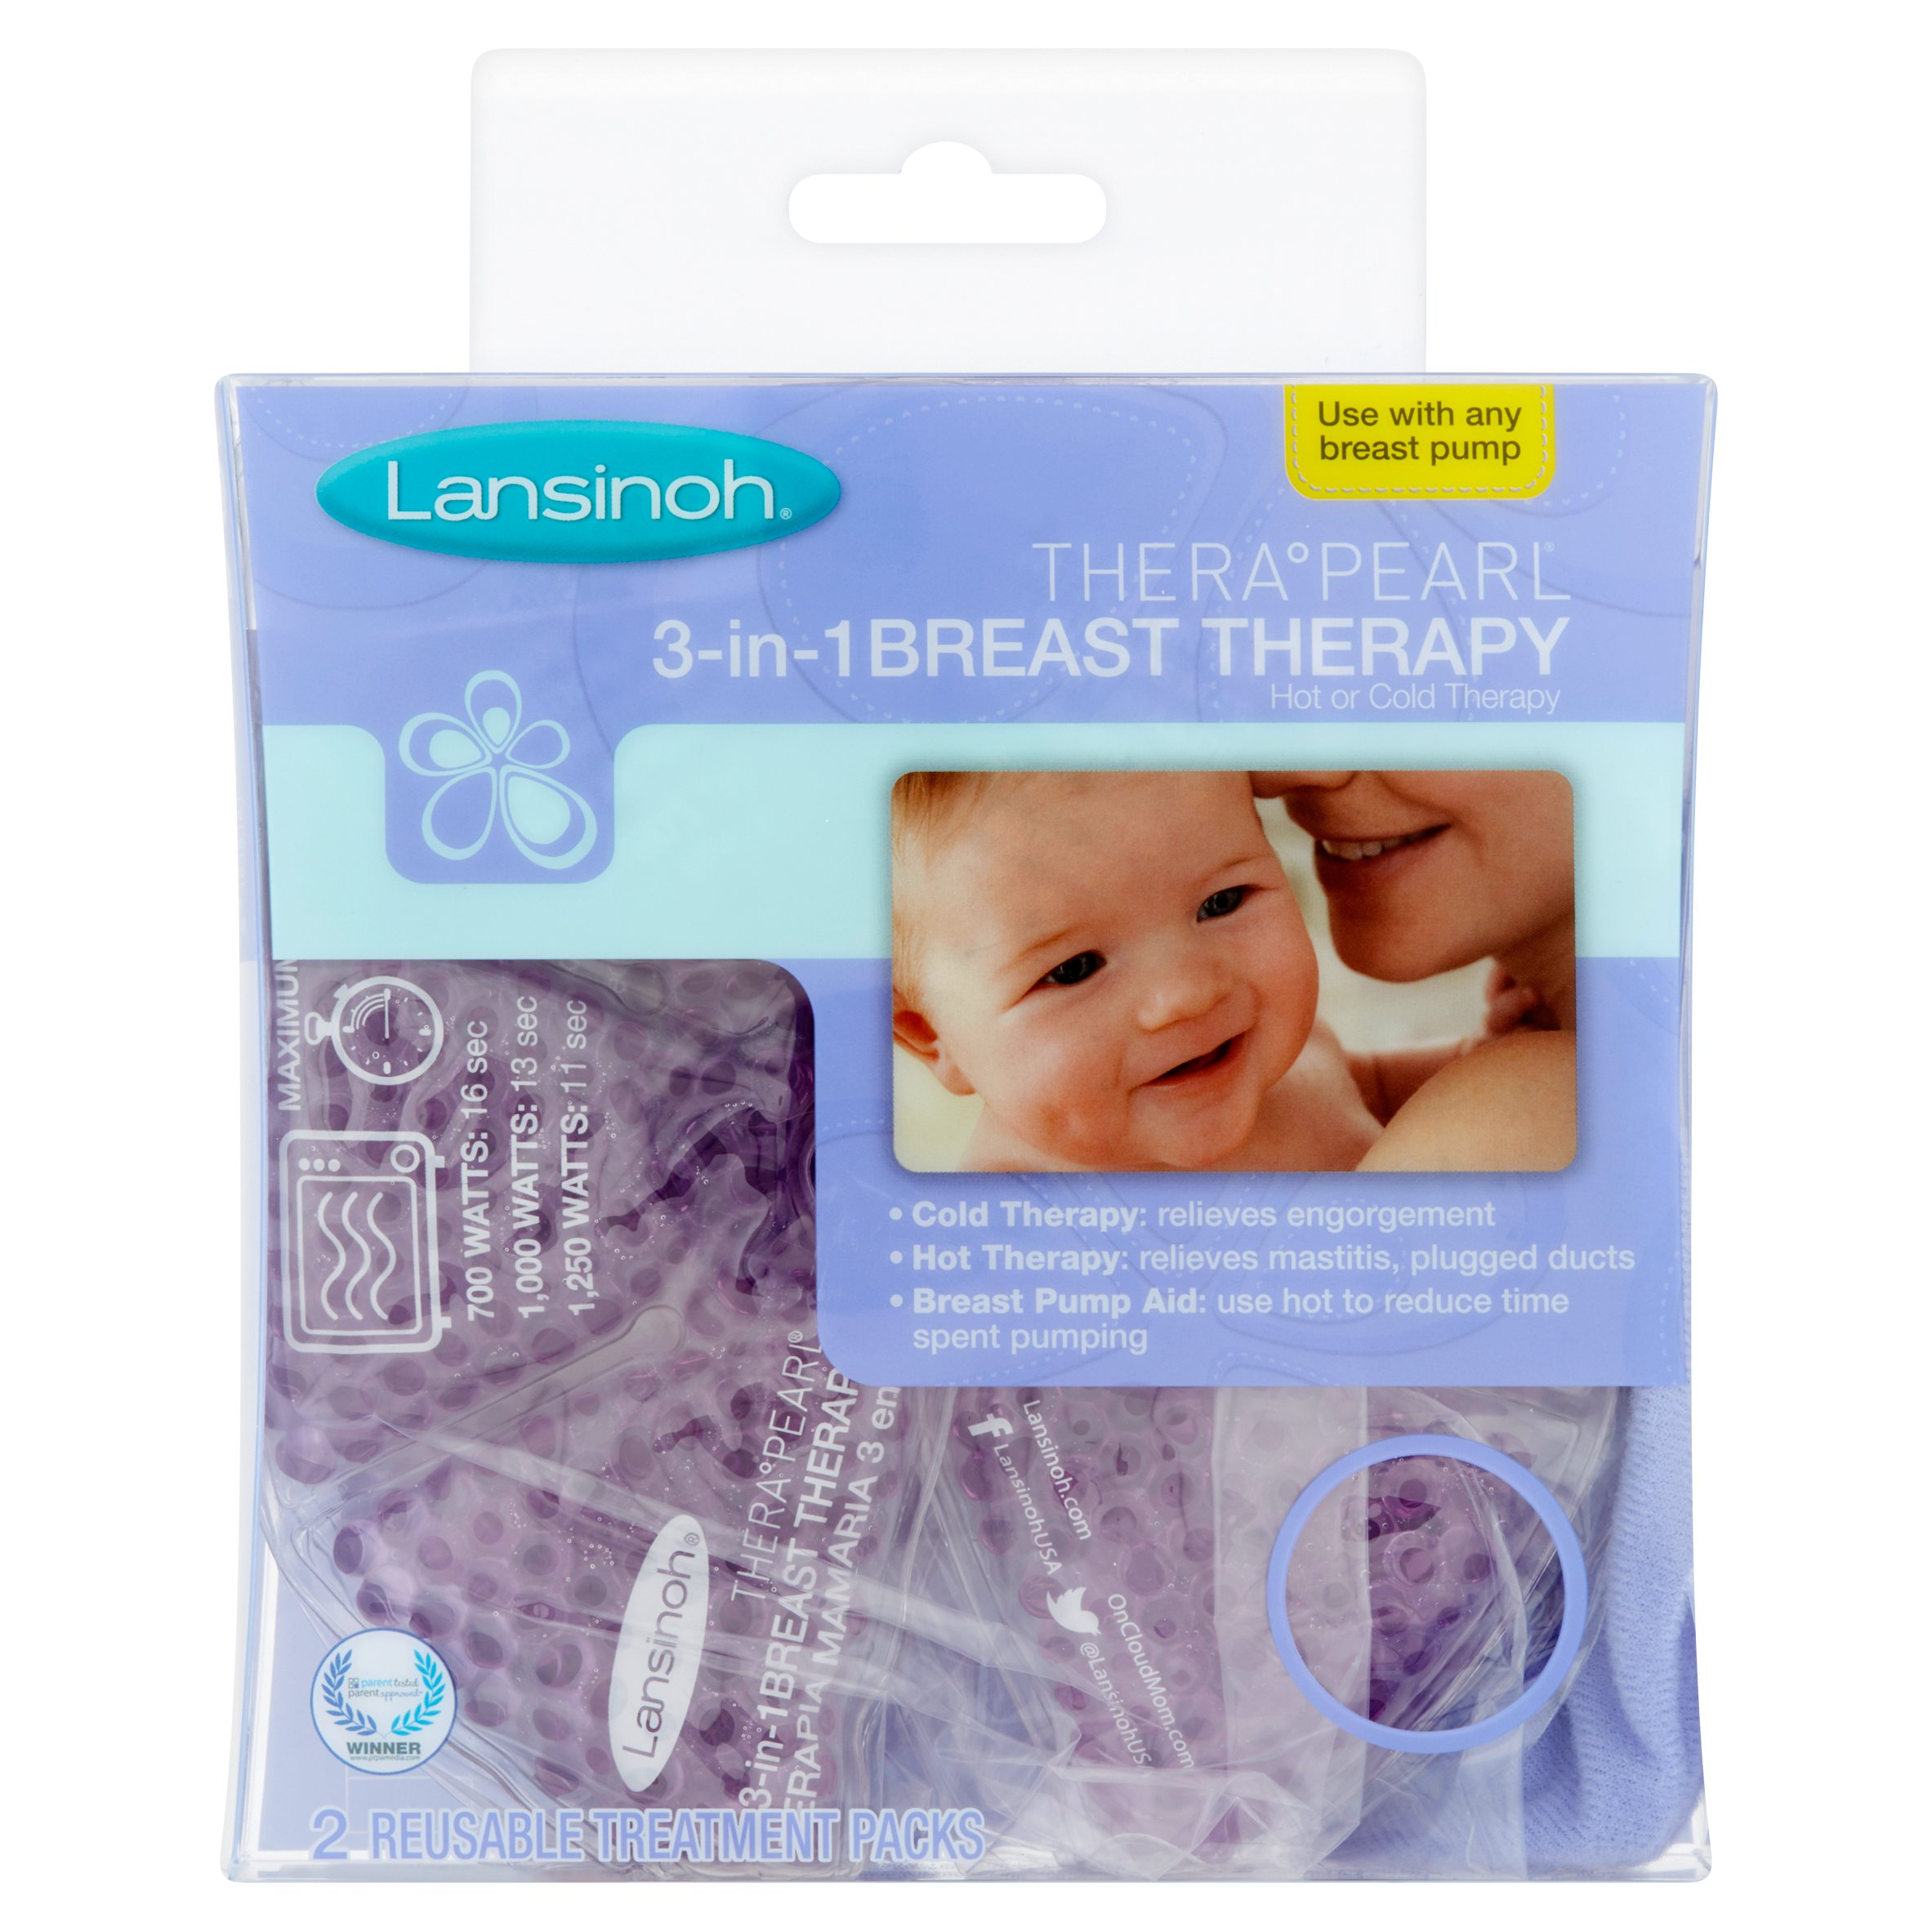 Lansinoh TheraPearl 3-in-1 Breast Therapy Hot or Cold